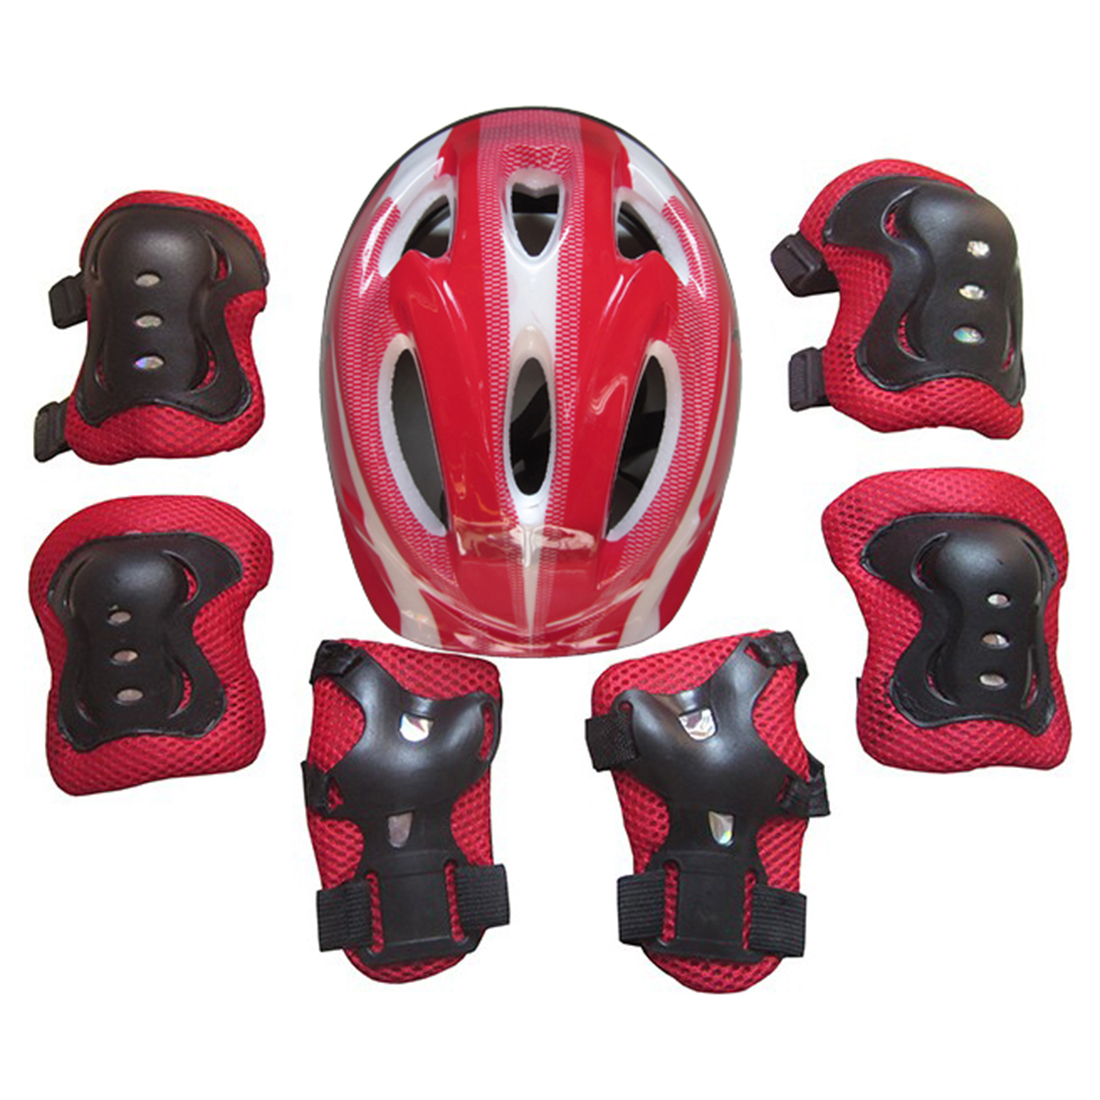 7Pcs Ice Skates Protective Gear Helmet Set for 5-13 Year-old Children Red by